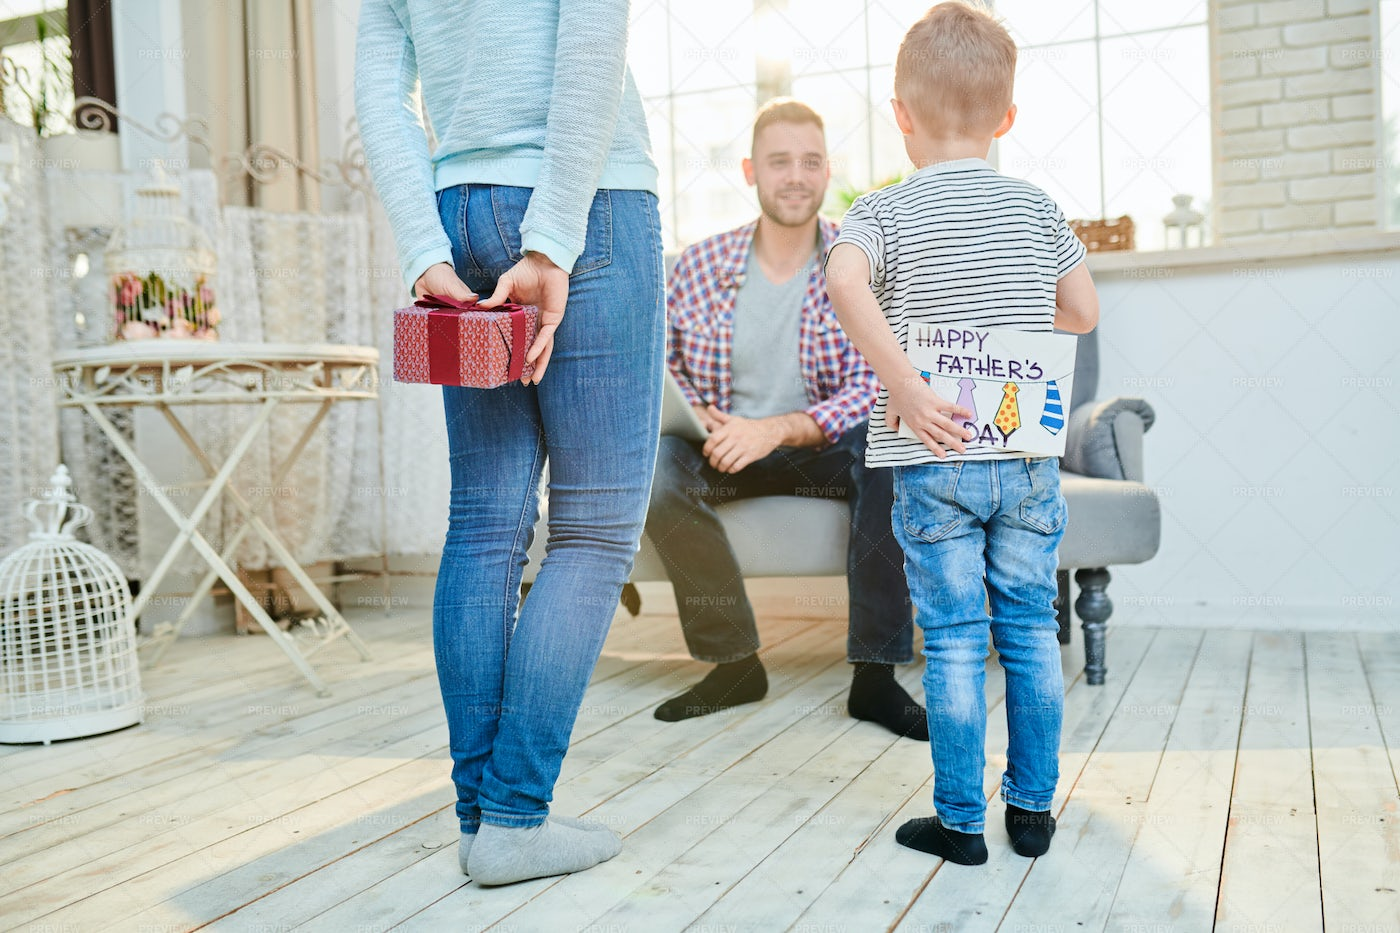 Young Family Celebrating Fathers...: Stock Photos